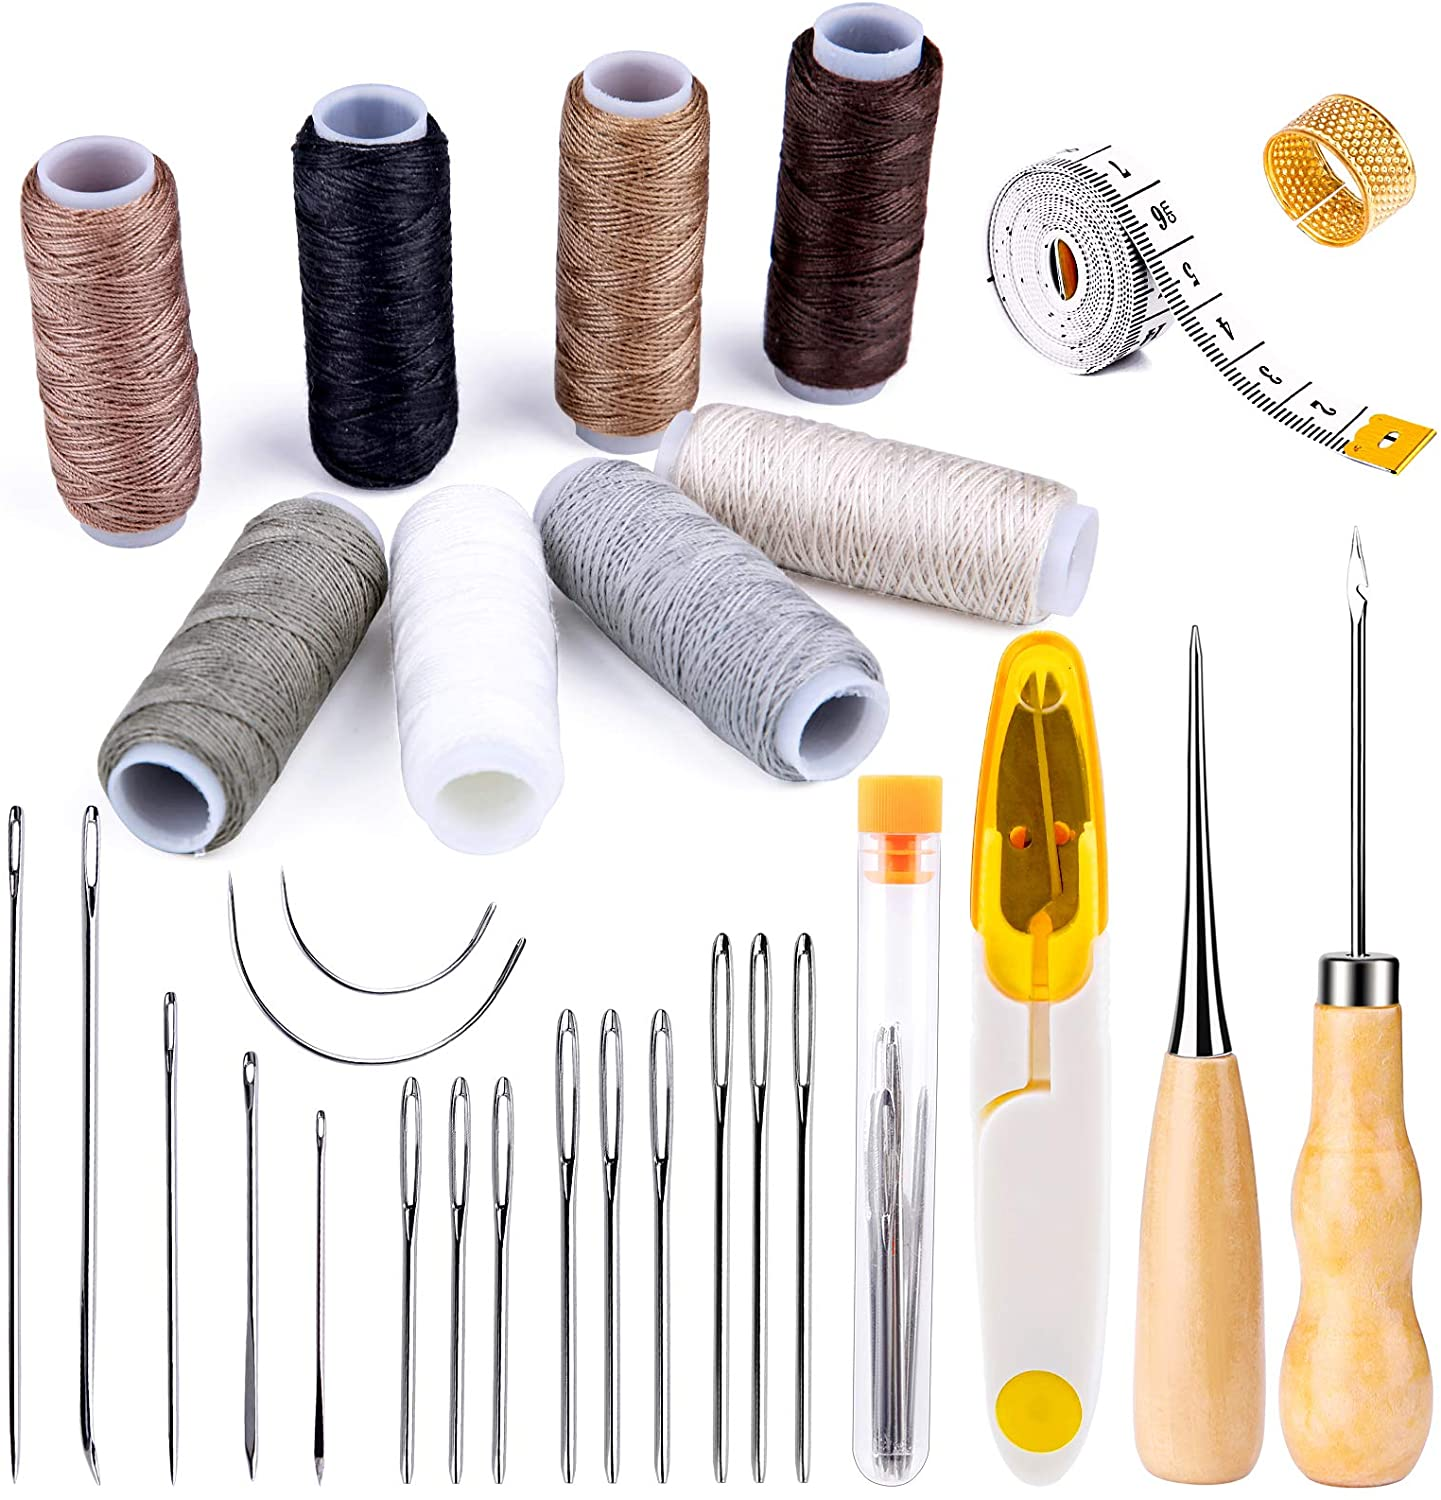 Jupean Store 30 Pieces Leather Sewing Kit